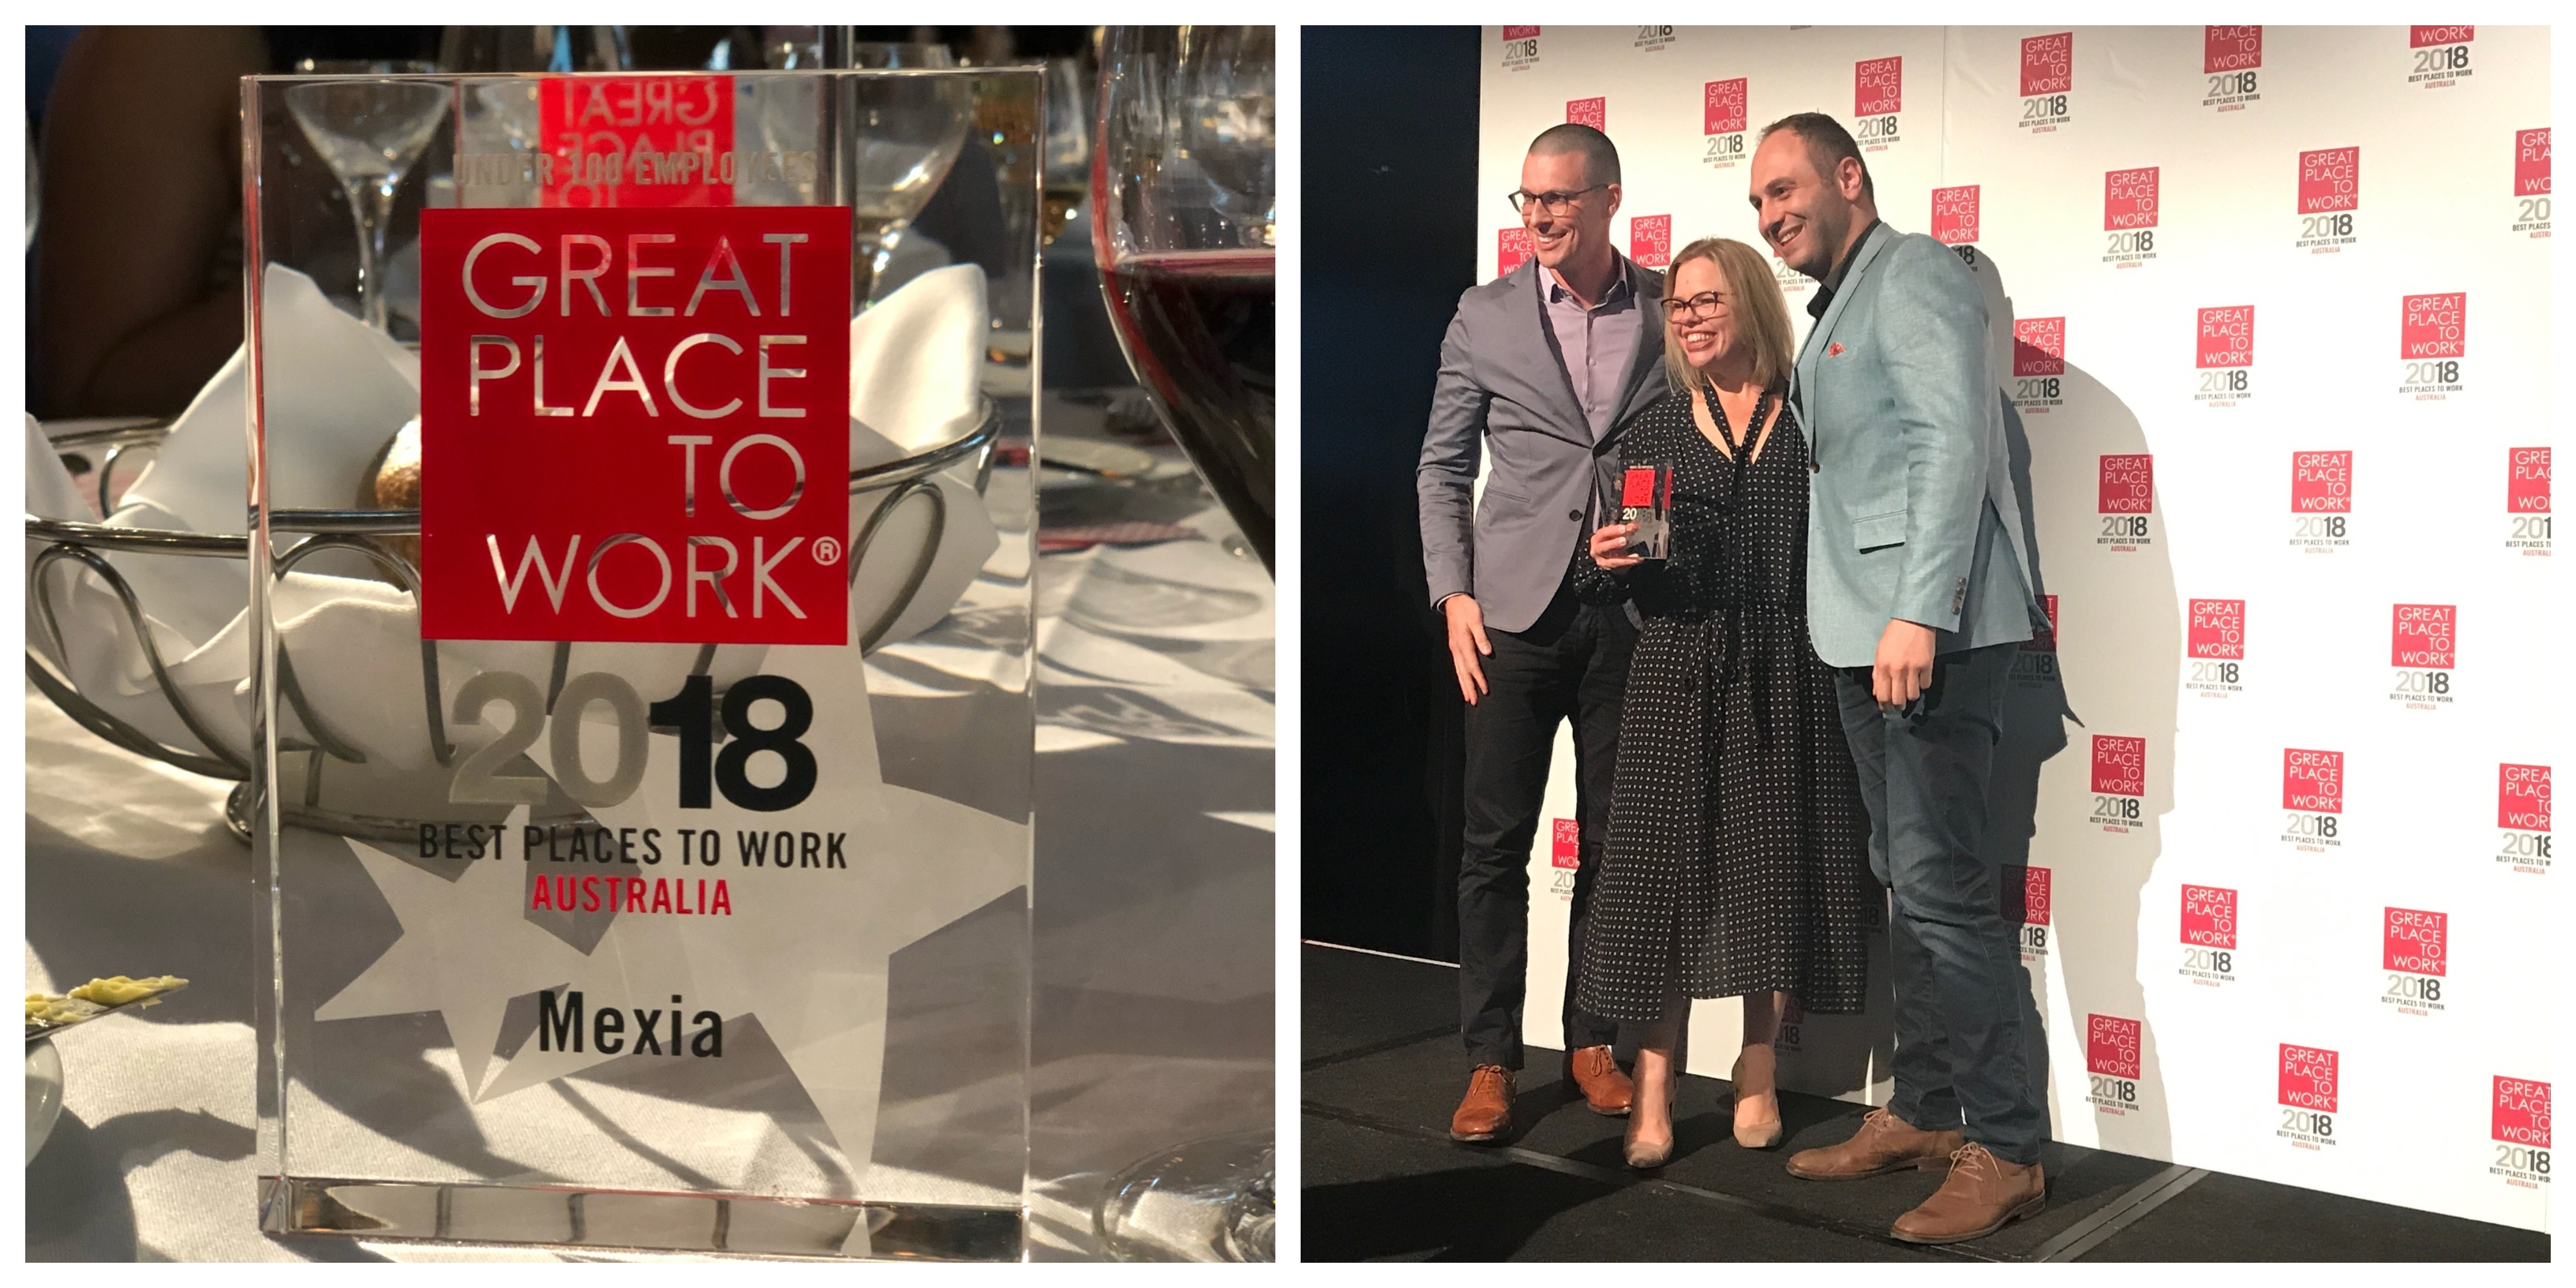 Mexia Announced 11th BEST Place to Work in Australia 2018!